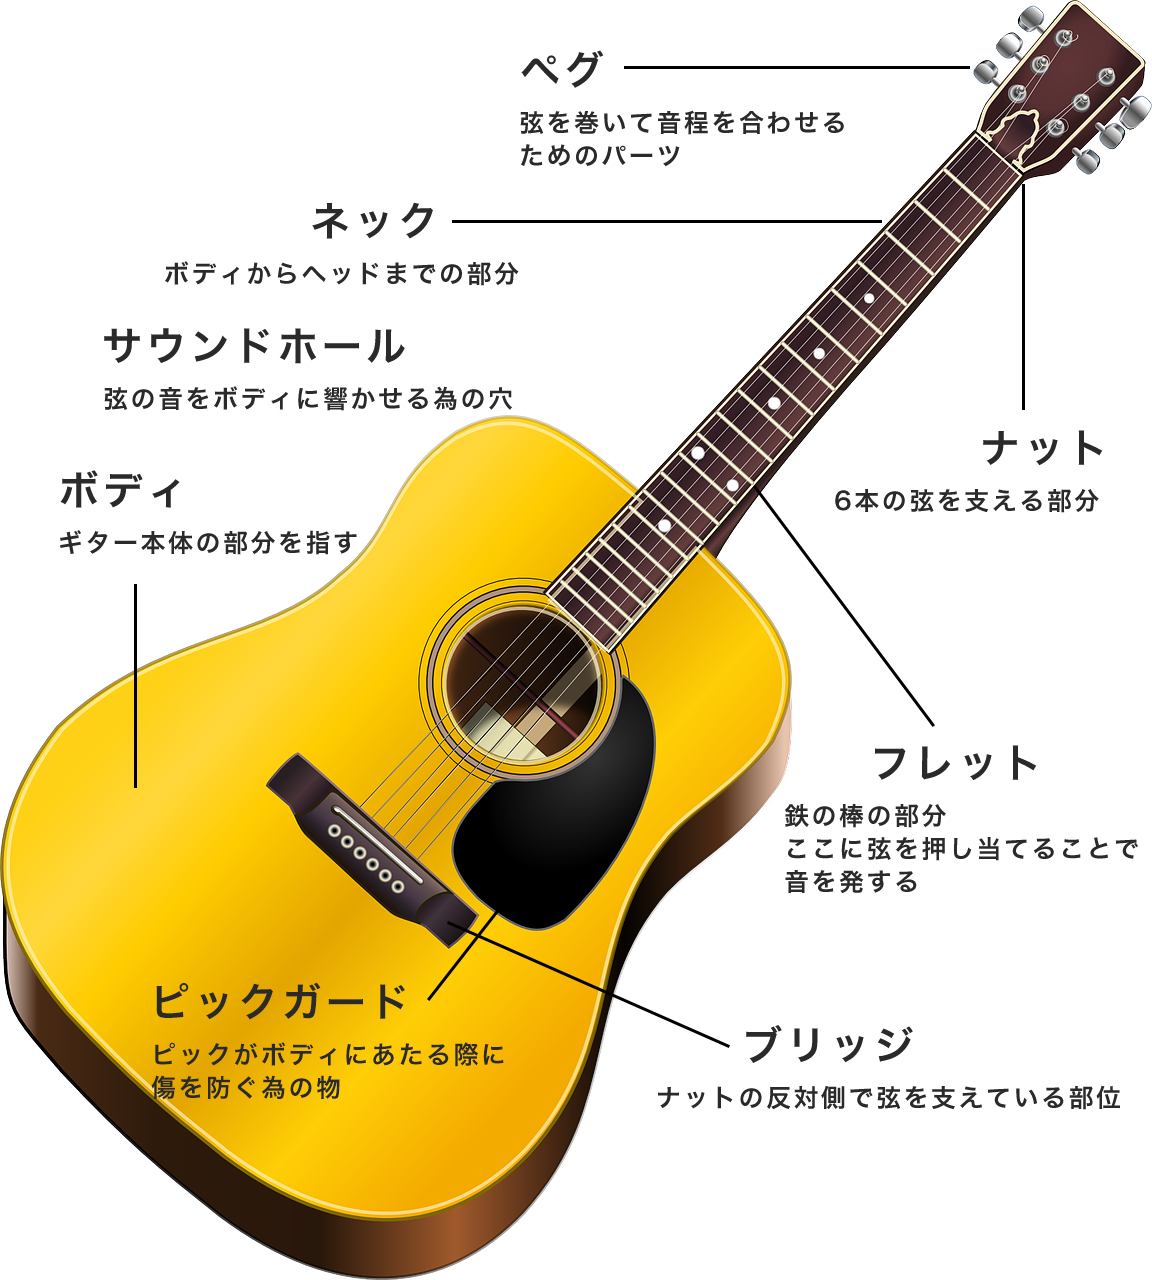 acoustic-guitar-149427_1280のコピー